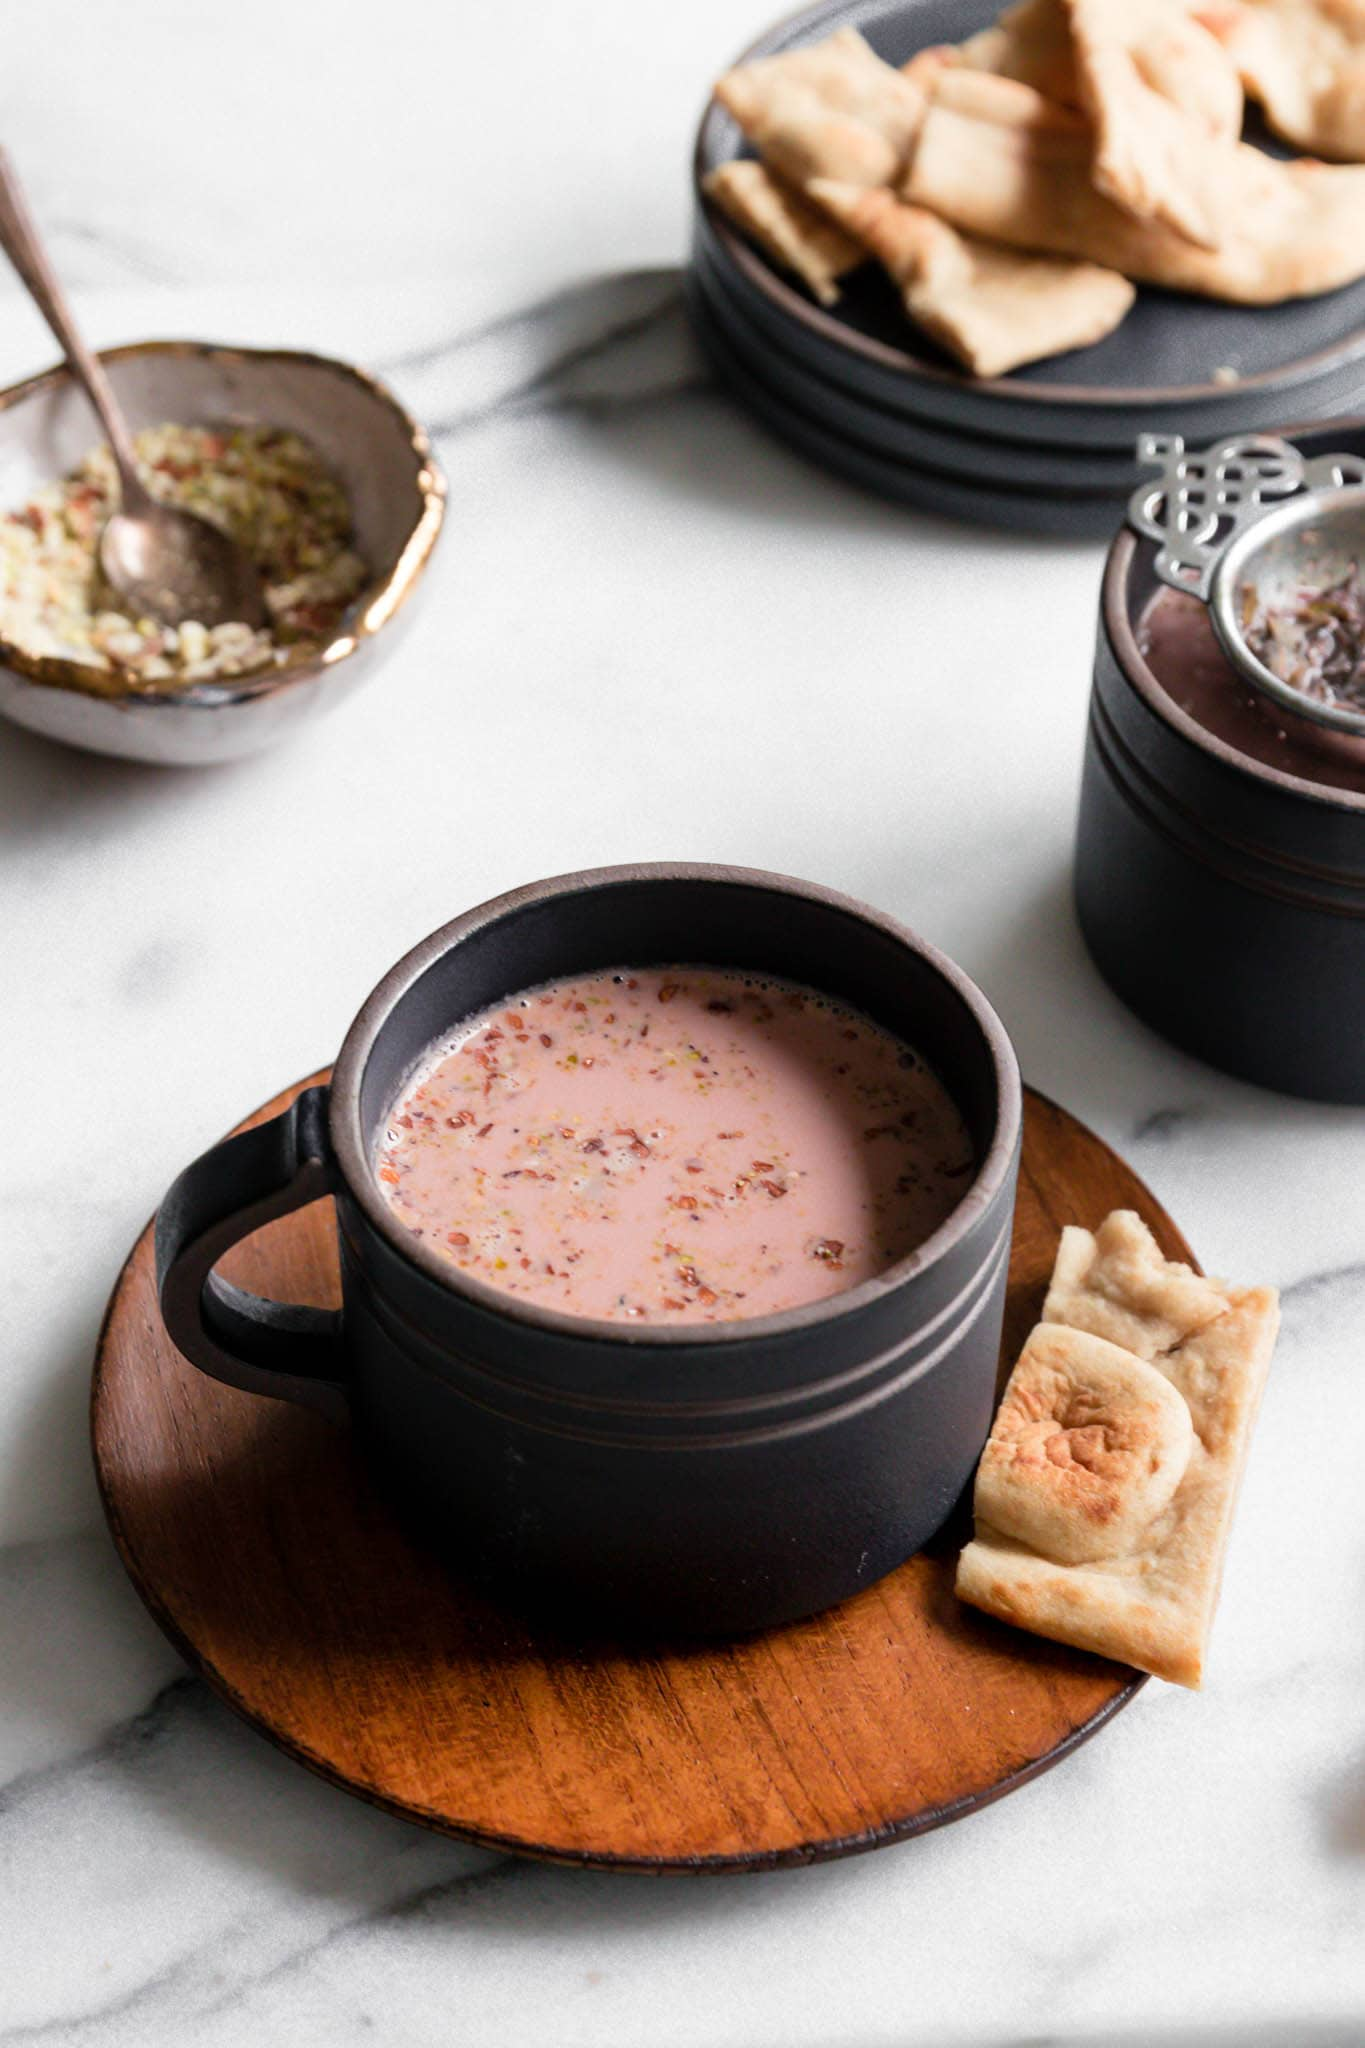 Dark cups filled with pink Kashmiri Chai garnished with nuts and served with a broken piece of naan